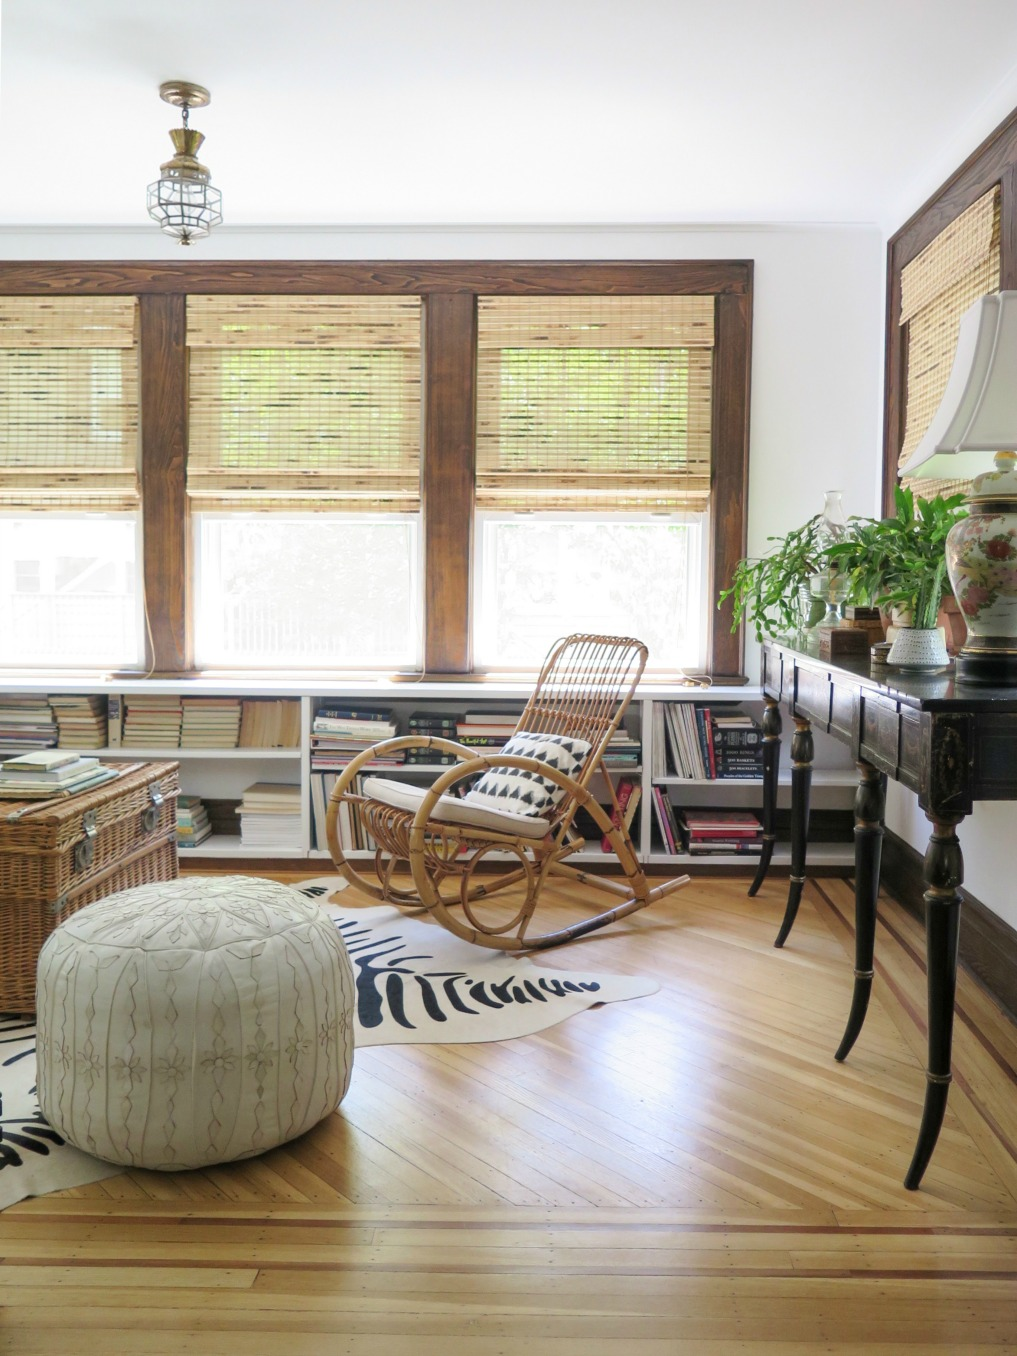 Boho home tour - love the rattan rocking chair and leather pouf in this 1920's home